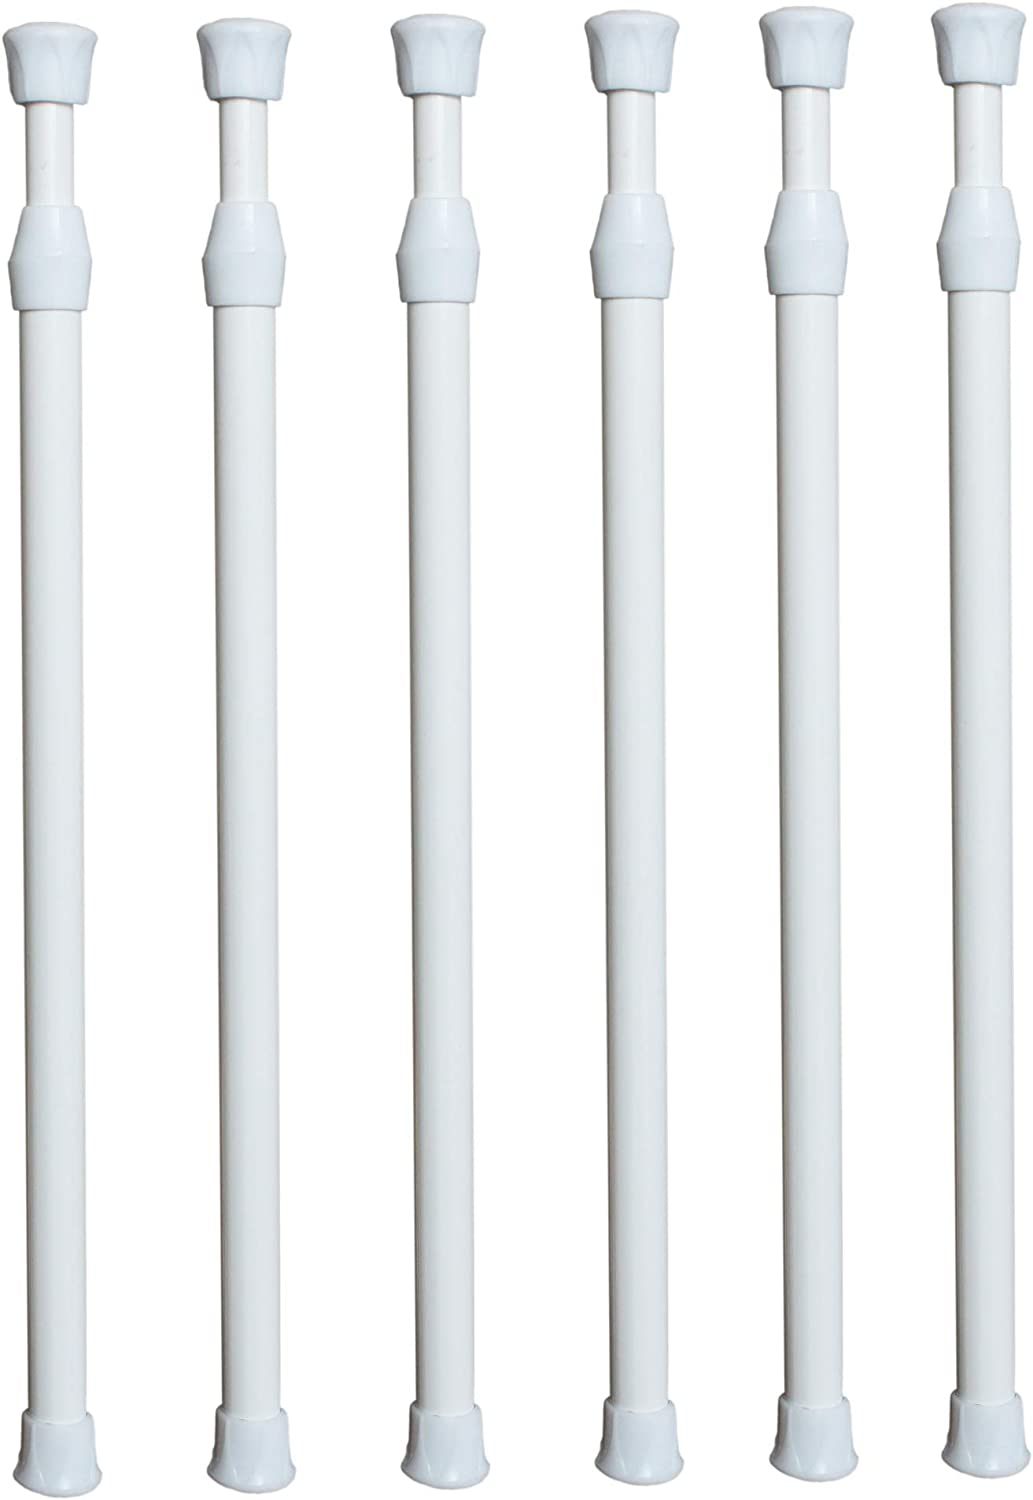 X-Haibei 6 Pack RV Refrigerator Cupboard Bar Spring Tension Rods, White Holds Food and Drinks in Place (15.8-28 INCH)